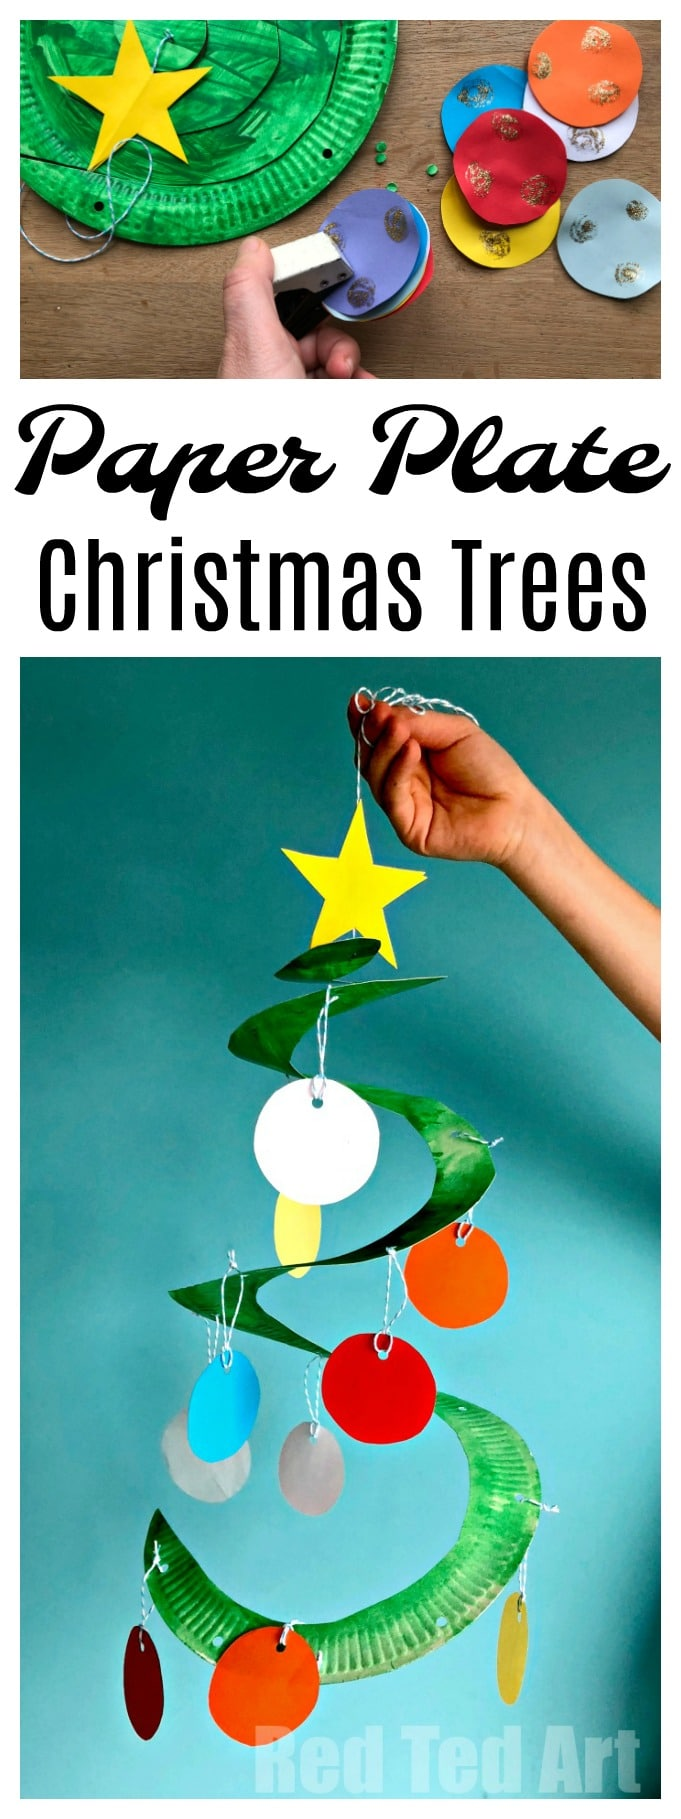 Paper Plate Christmas Tree Whirligig - Paper Plate Twirlers are a easy and fun to make, great classroom Christmas Decoration. Paper Plate Christmas trees can also be made as collaborative project.. and we give tips to simplify the craft or extend it. They are SUCH a pretty decoration for Christmas though.. Fabulous Christmas Crafts for Preschoolers! #ChristmasTree #PaperPlate #PaperplateChristmasTree #Preschool